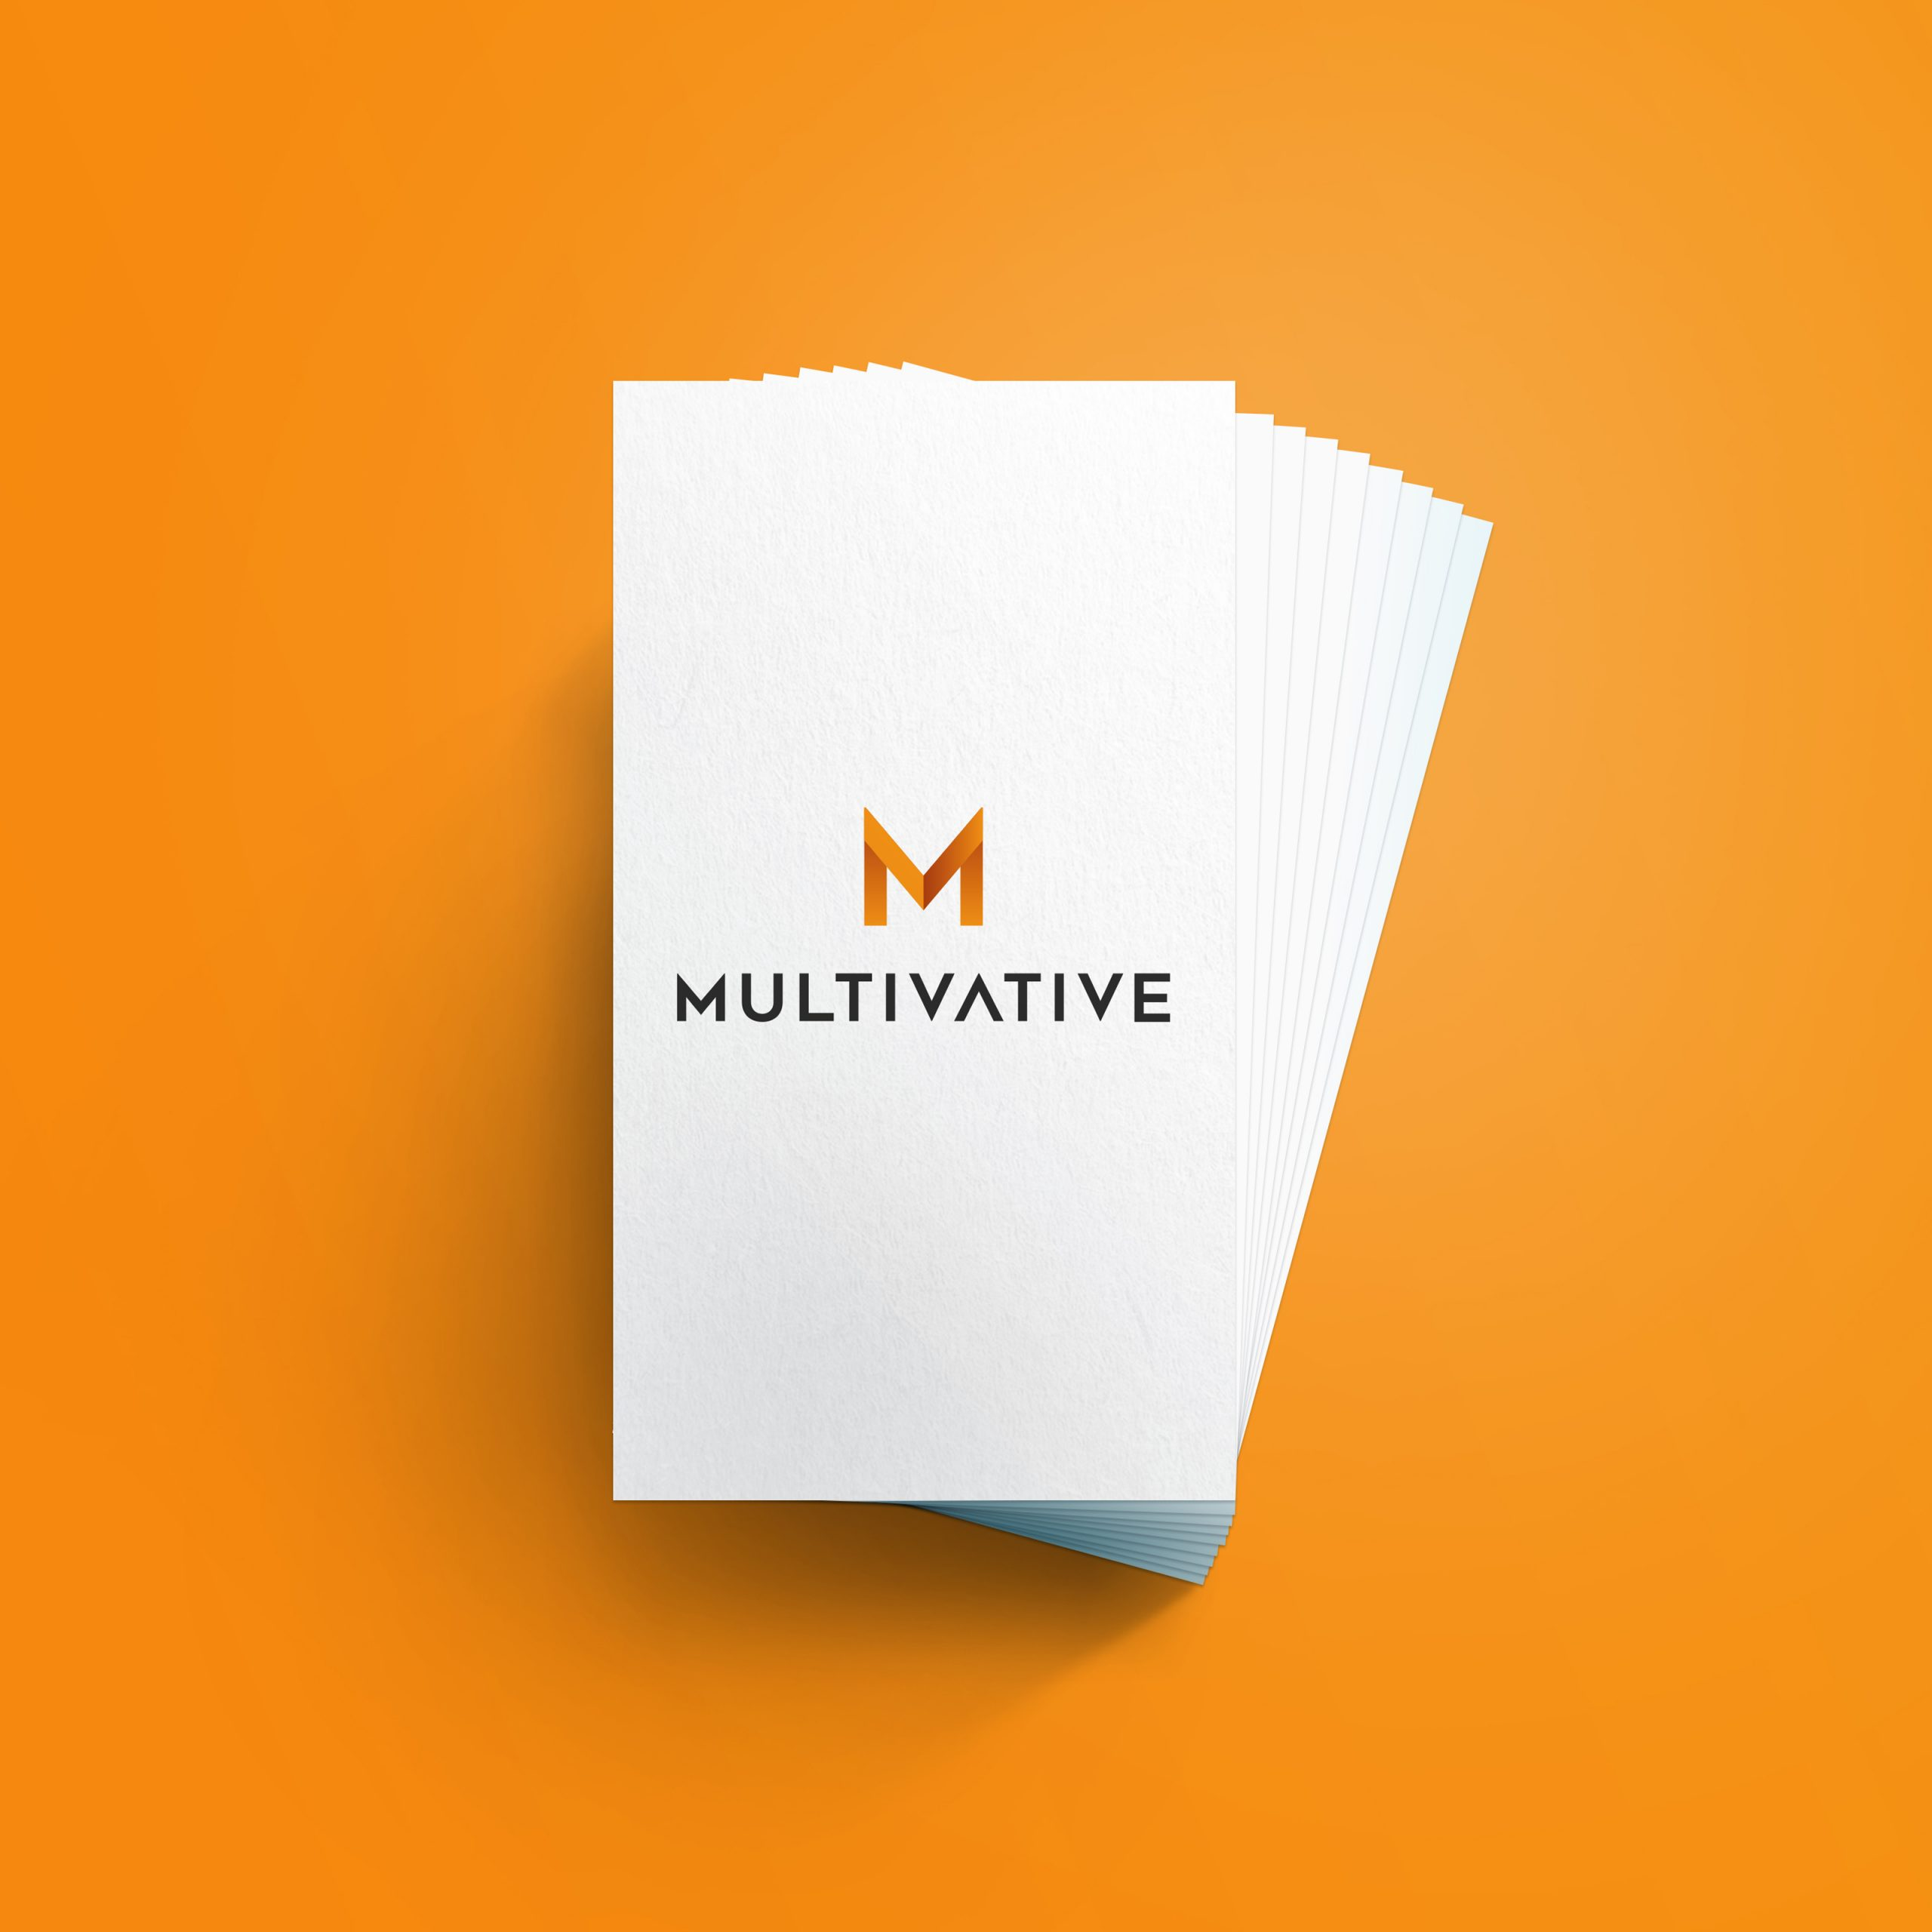 180326_MULTIVATIVE_Titel